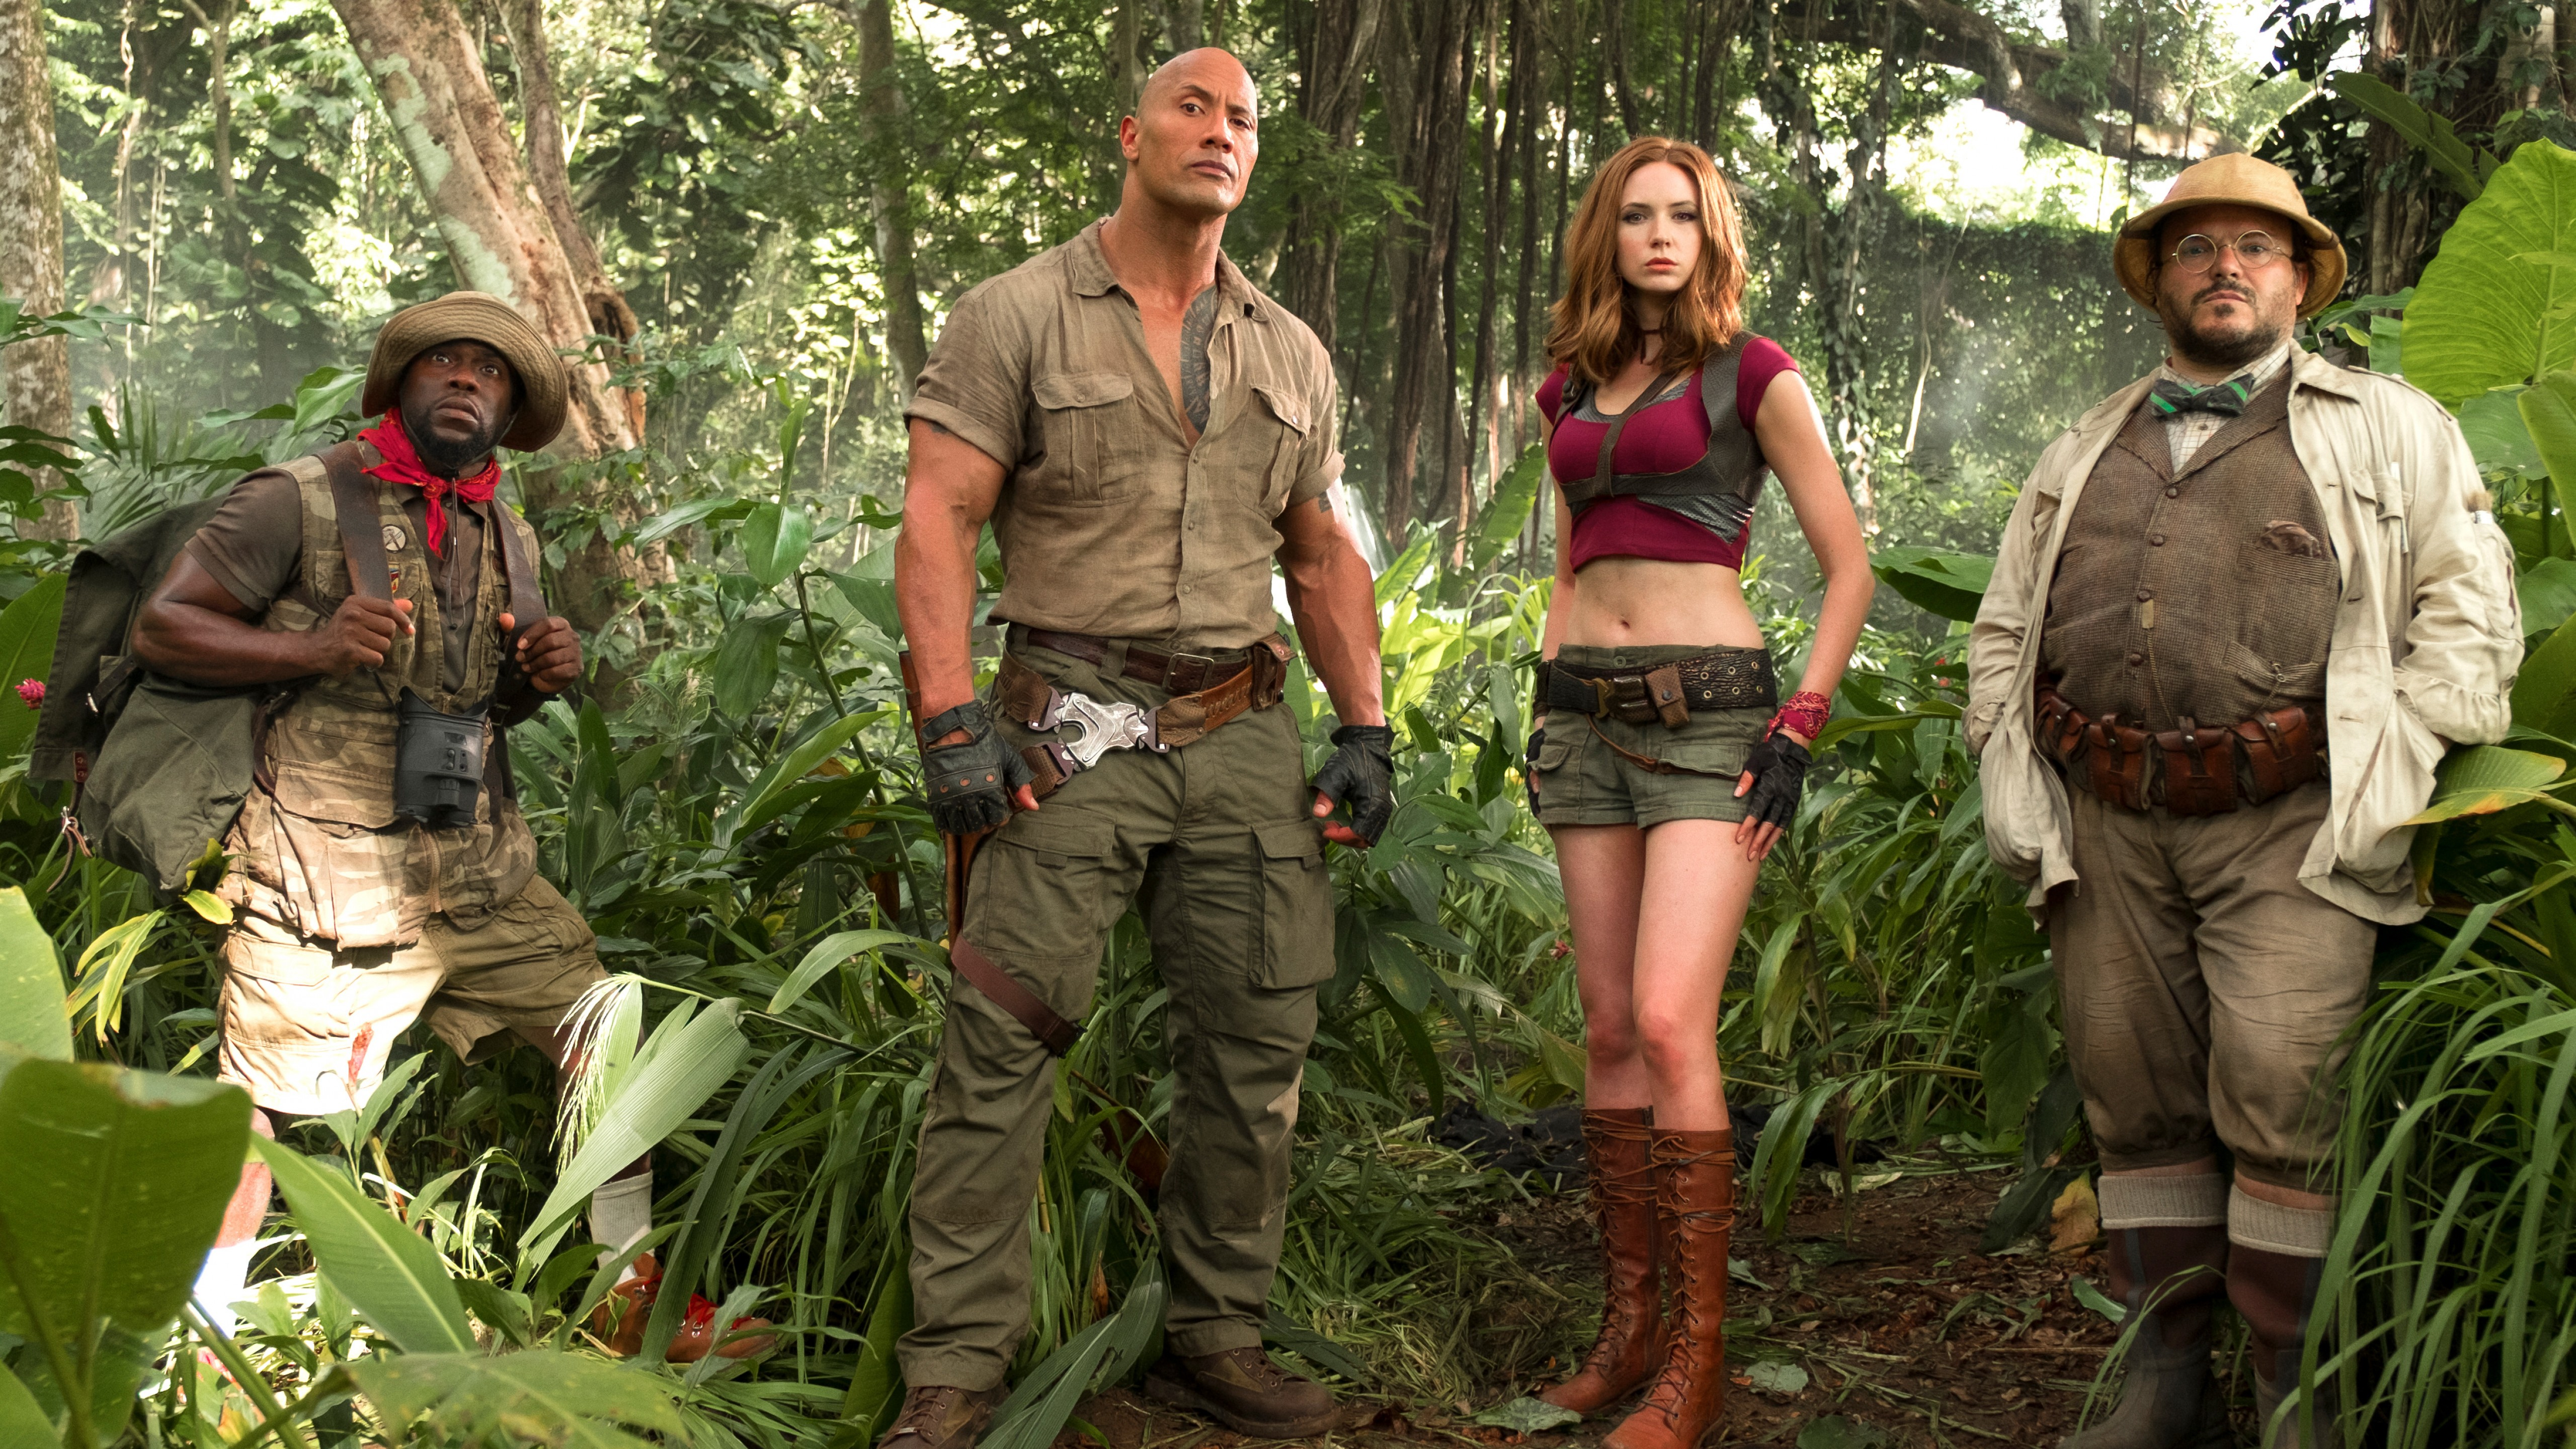 Jumanji Welcome to the Jungle Wallpaper 6   5120 X 2880 stmednet 5120x2880